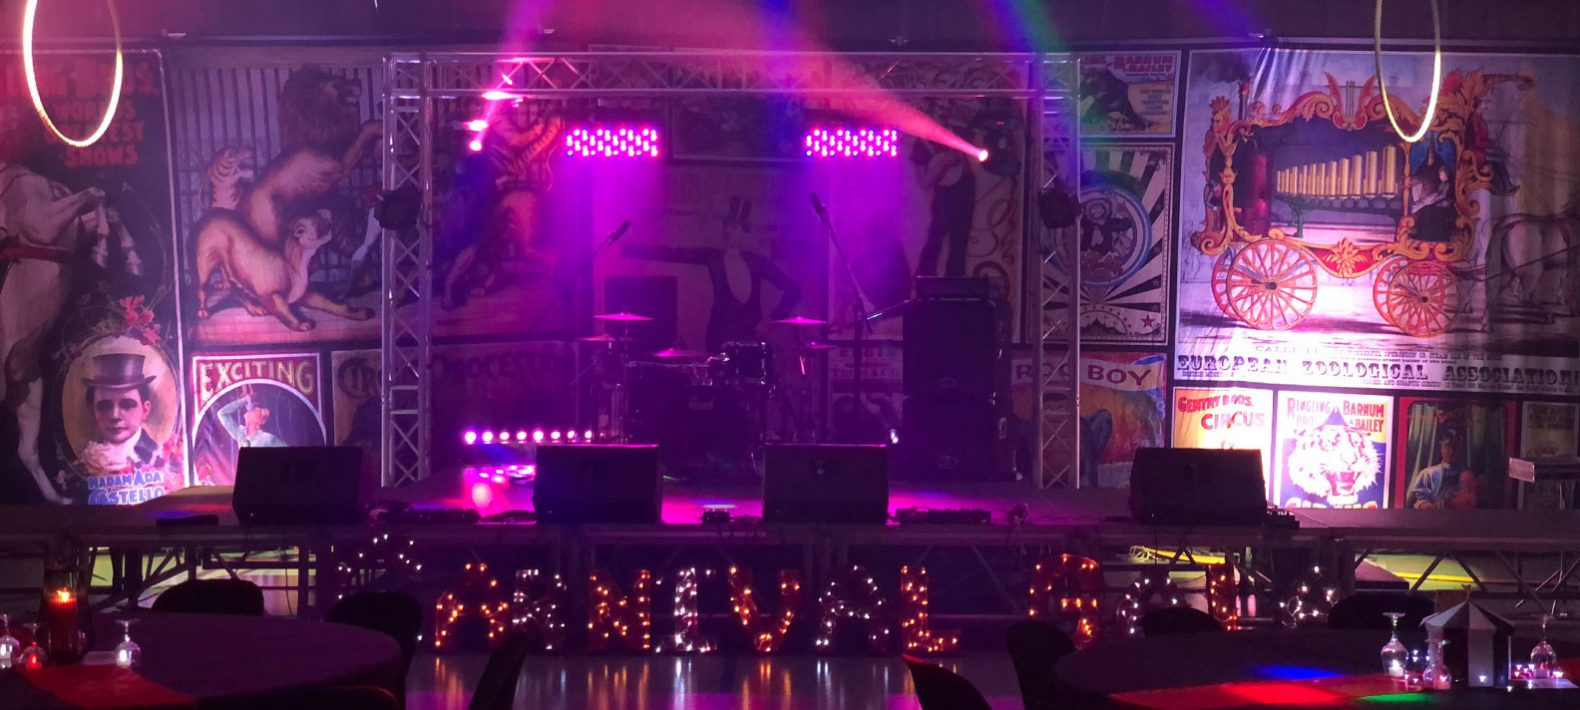 Event Equipment hire Rockhampton & Gladstone